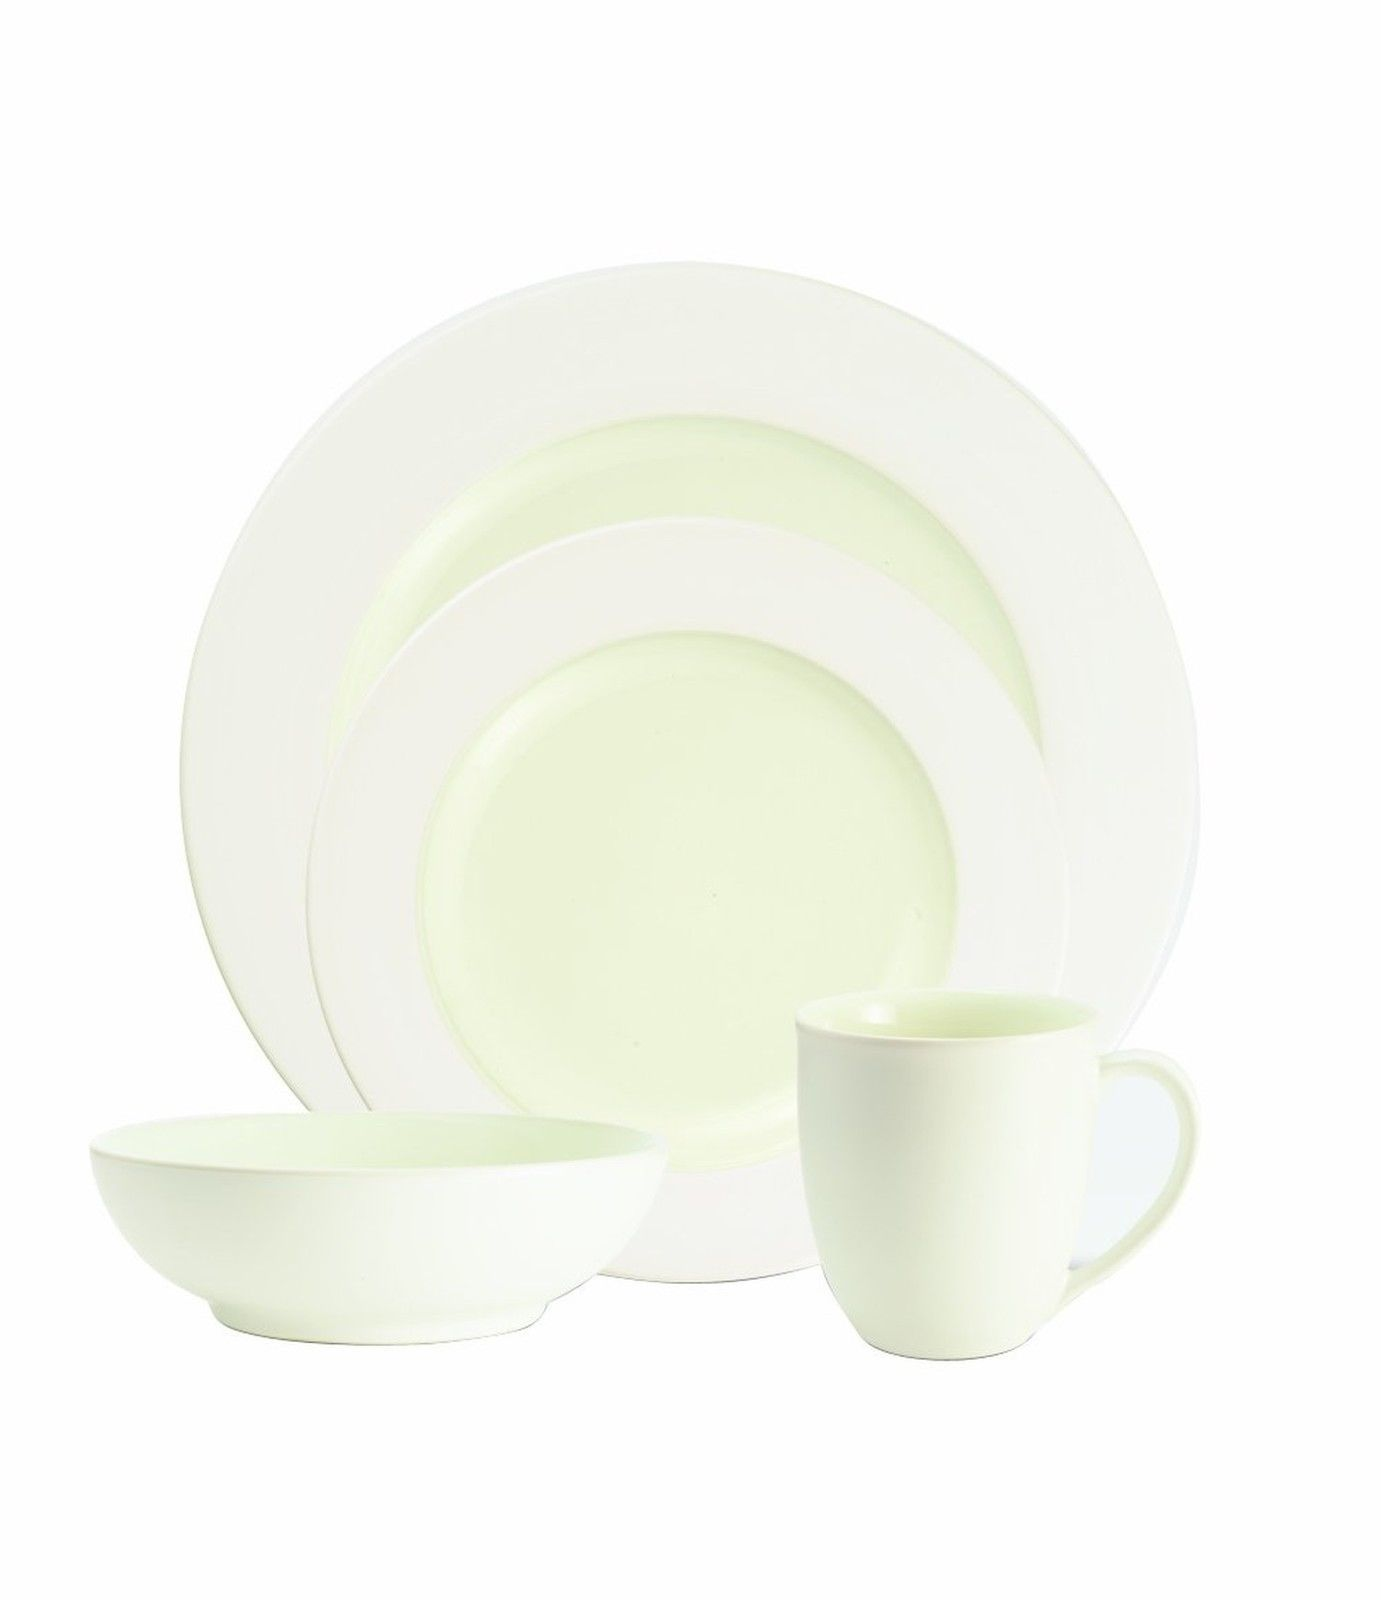 Noritake Colorwave White 4-Piece Rim Round Dish Set